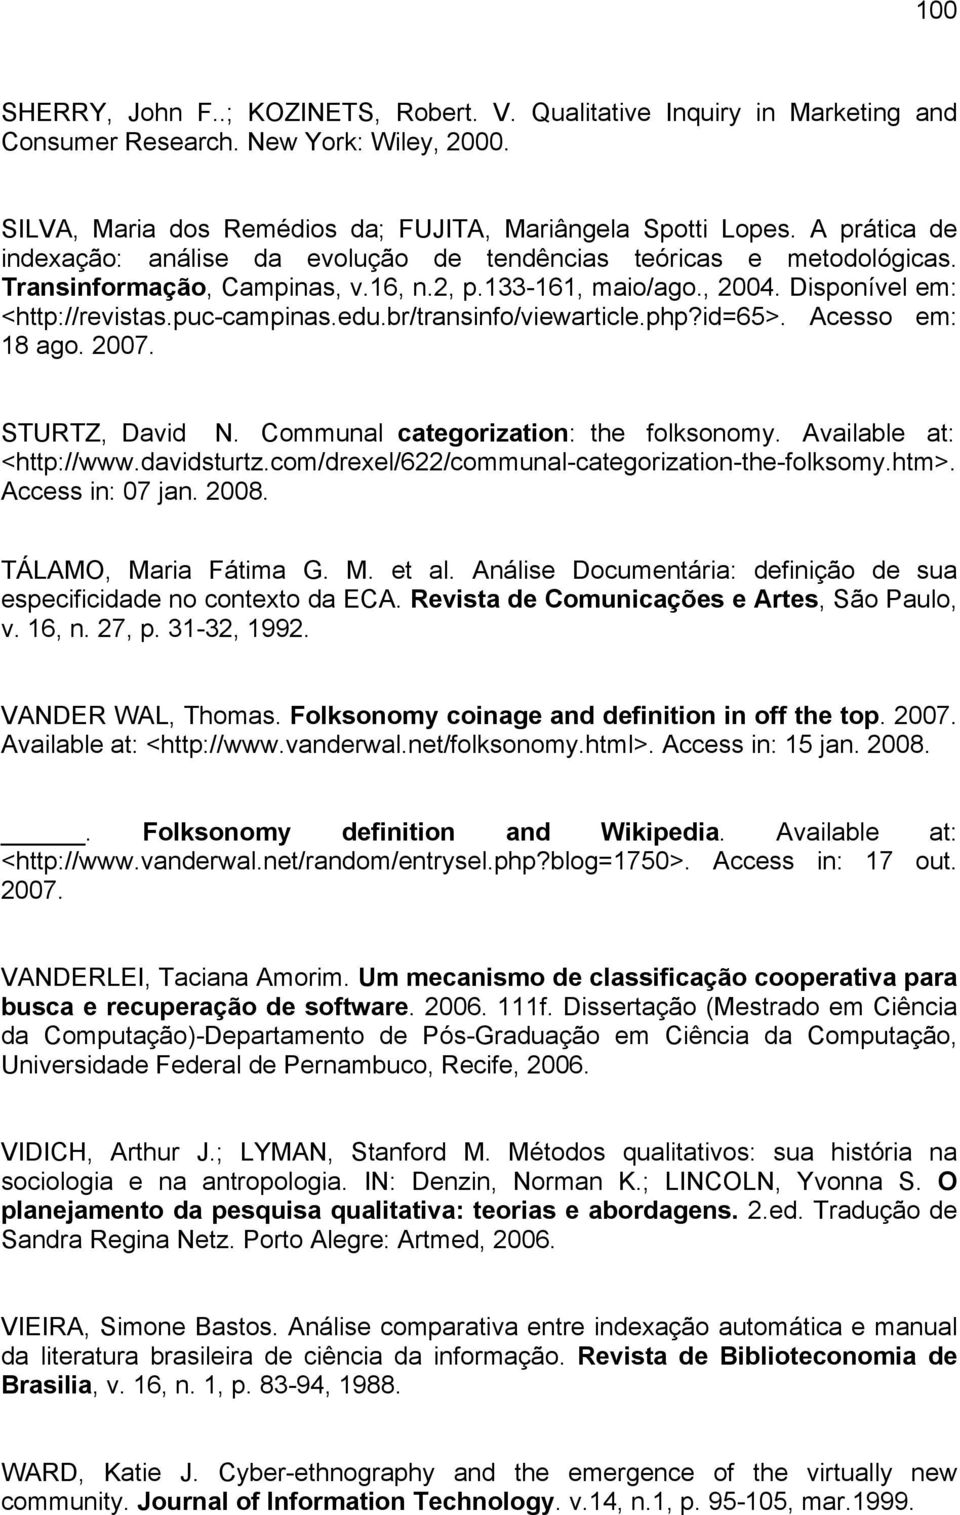 br/transinfo/viewarticle.php?id=65>. Acesso em: 18 ago. 2007. STURTZ, David N. Communal categorization: the folksonomy. Available at: <http://www.davidsturtz.